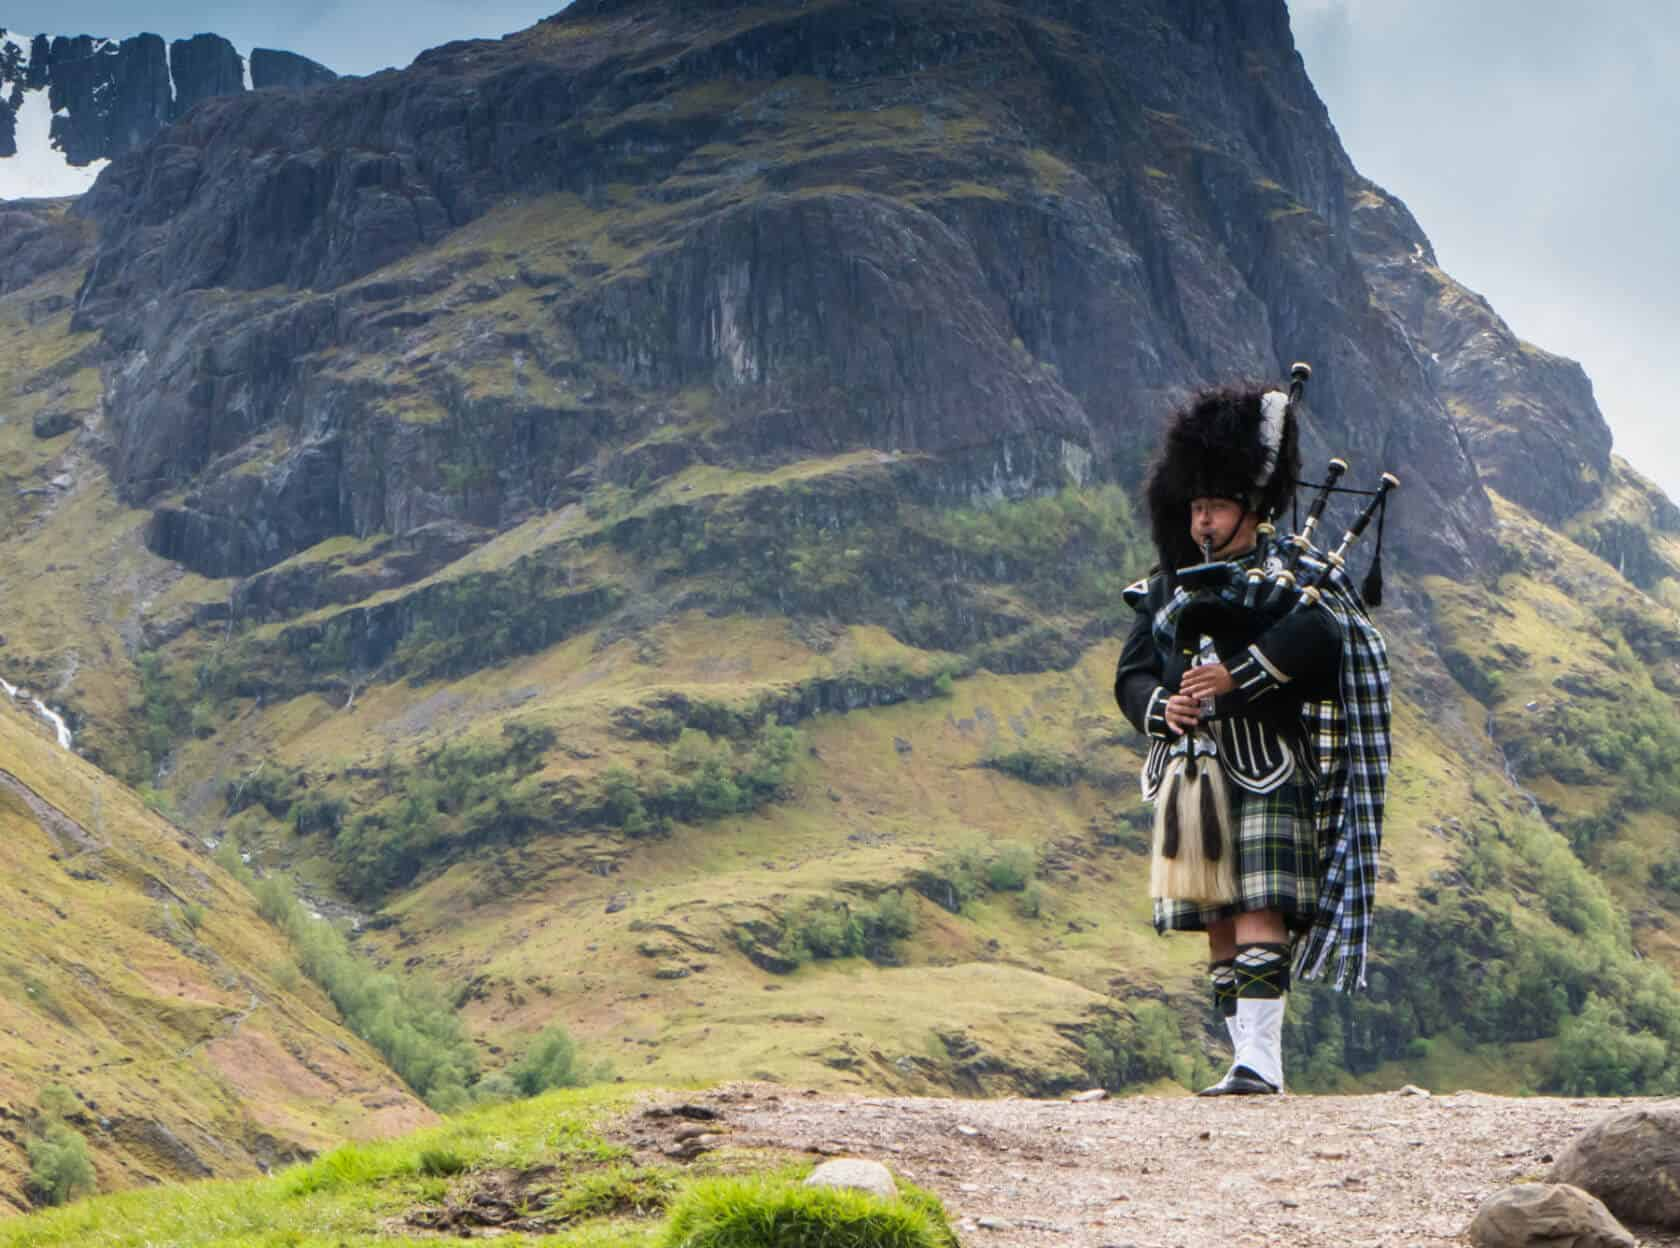 Scottish performer in mountains